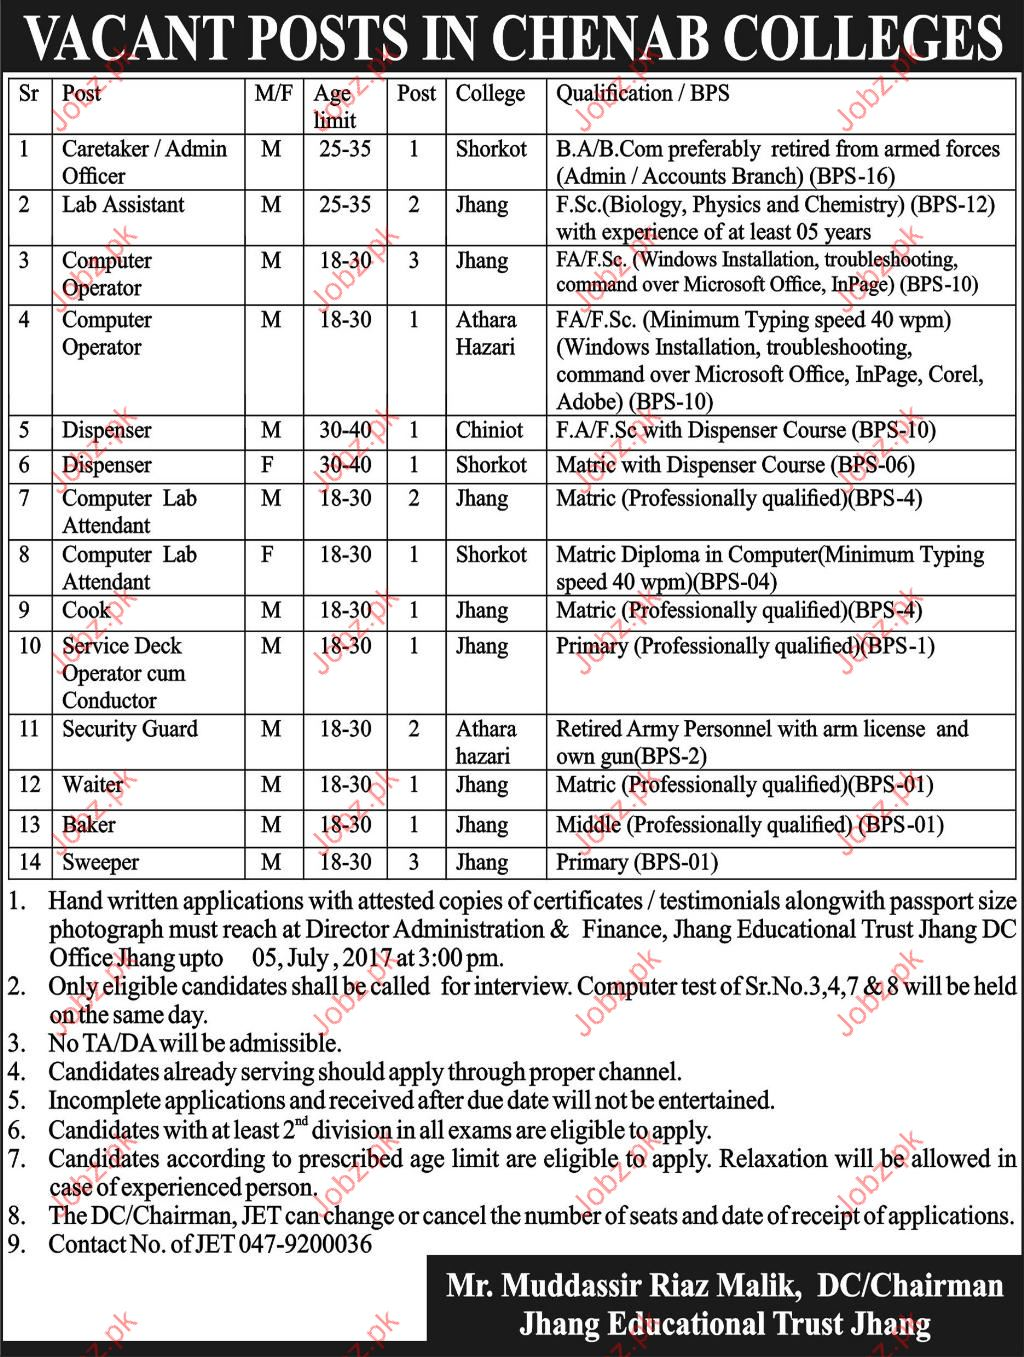 Chenab College CC Job Opportunities